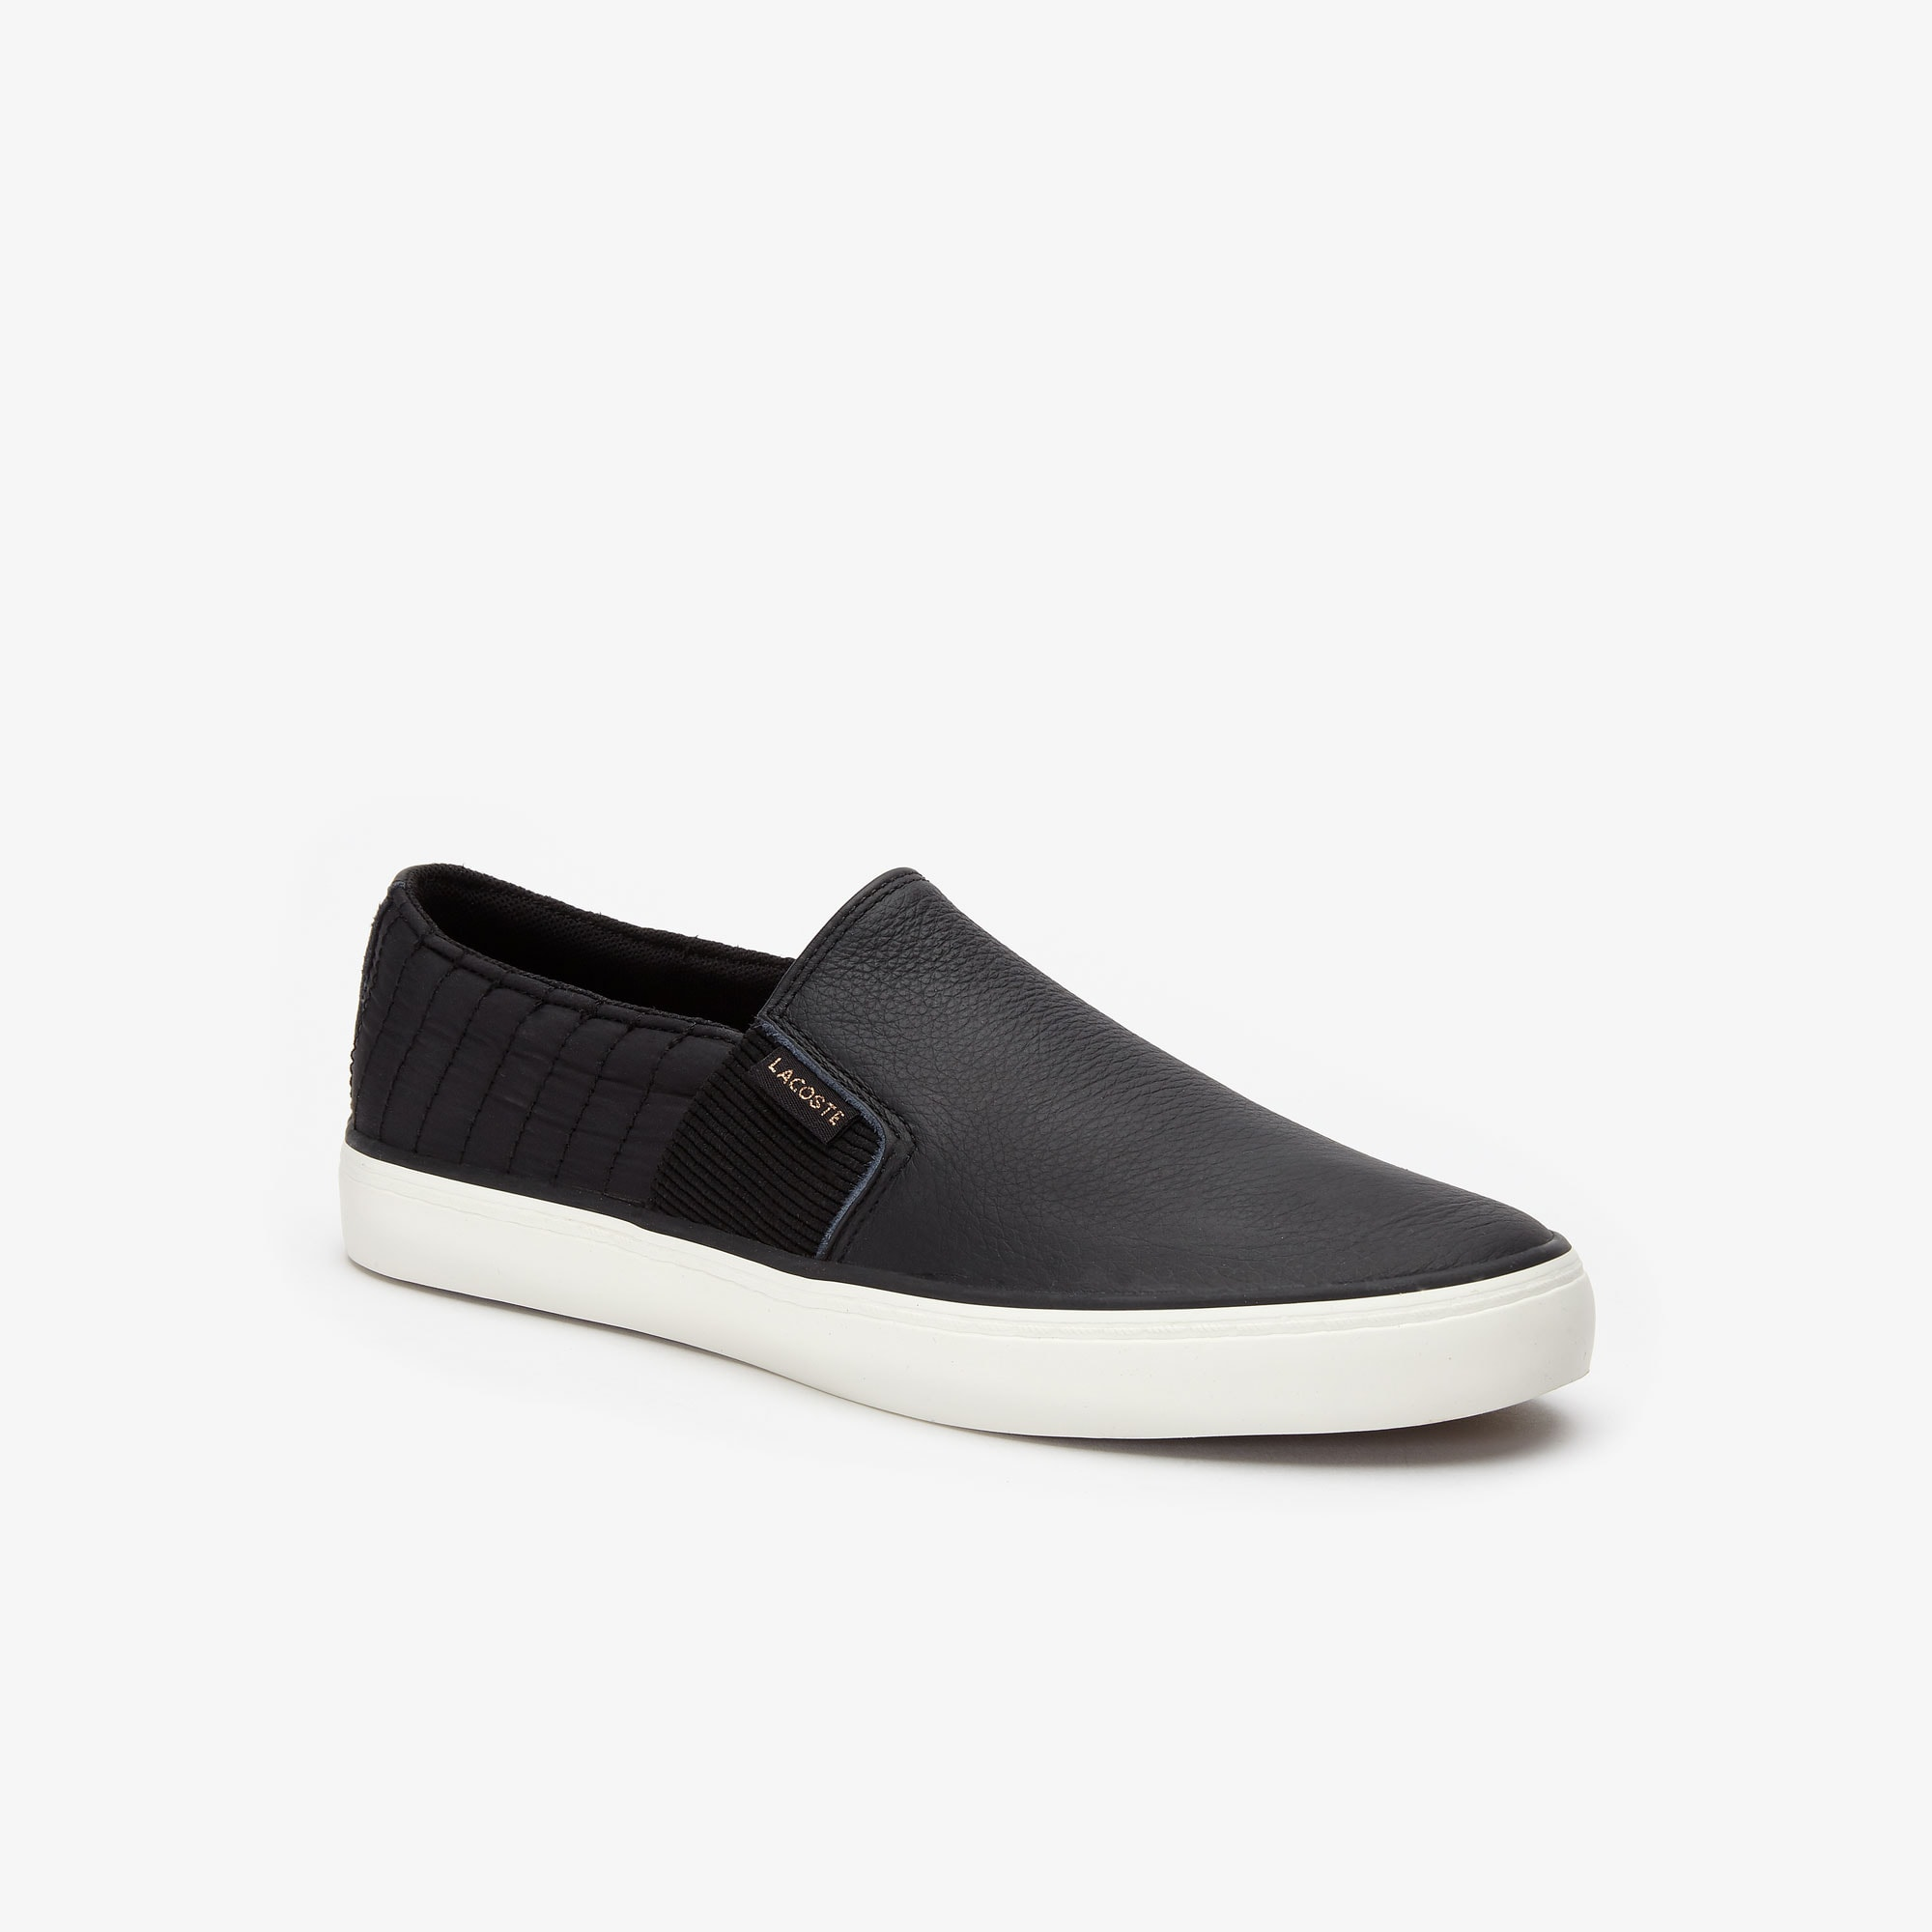 Lacoste Sneakers Women's Gazon 2.0 Leather-Paneled Slip On Sneakers